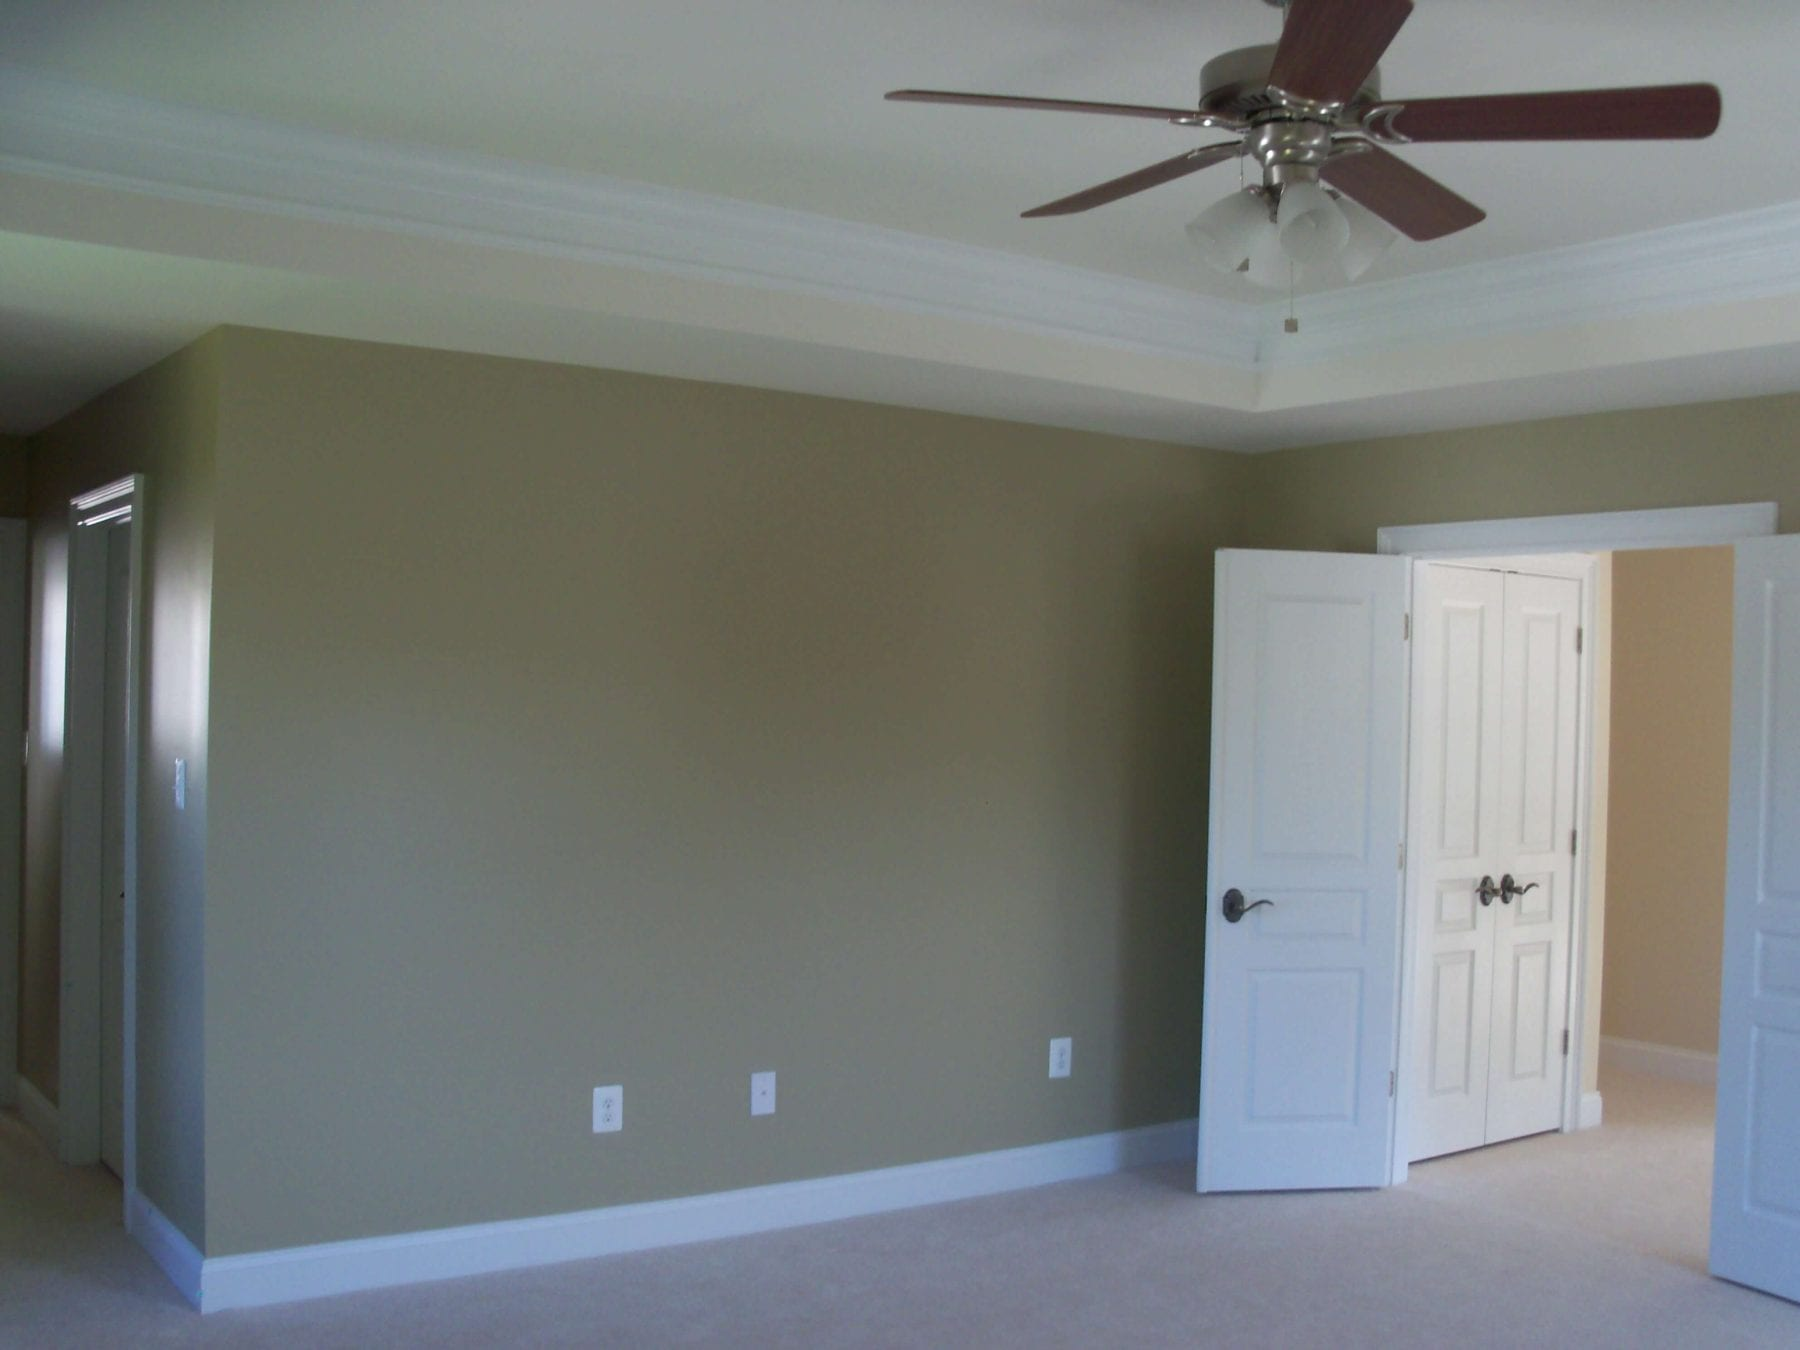 Home painting contractor in baltimore md home painter for Flooring contractor columbia md